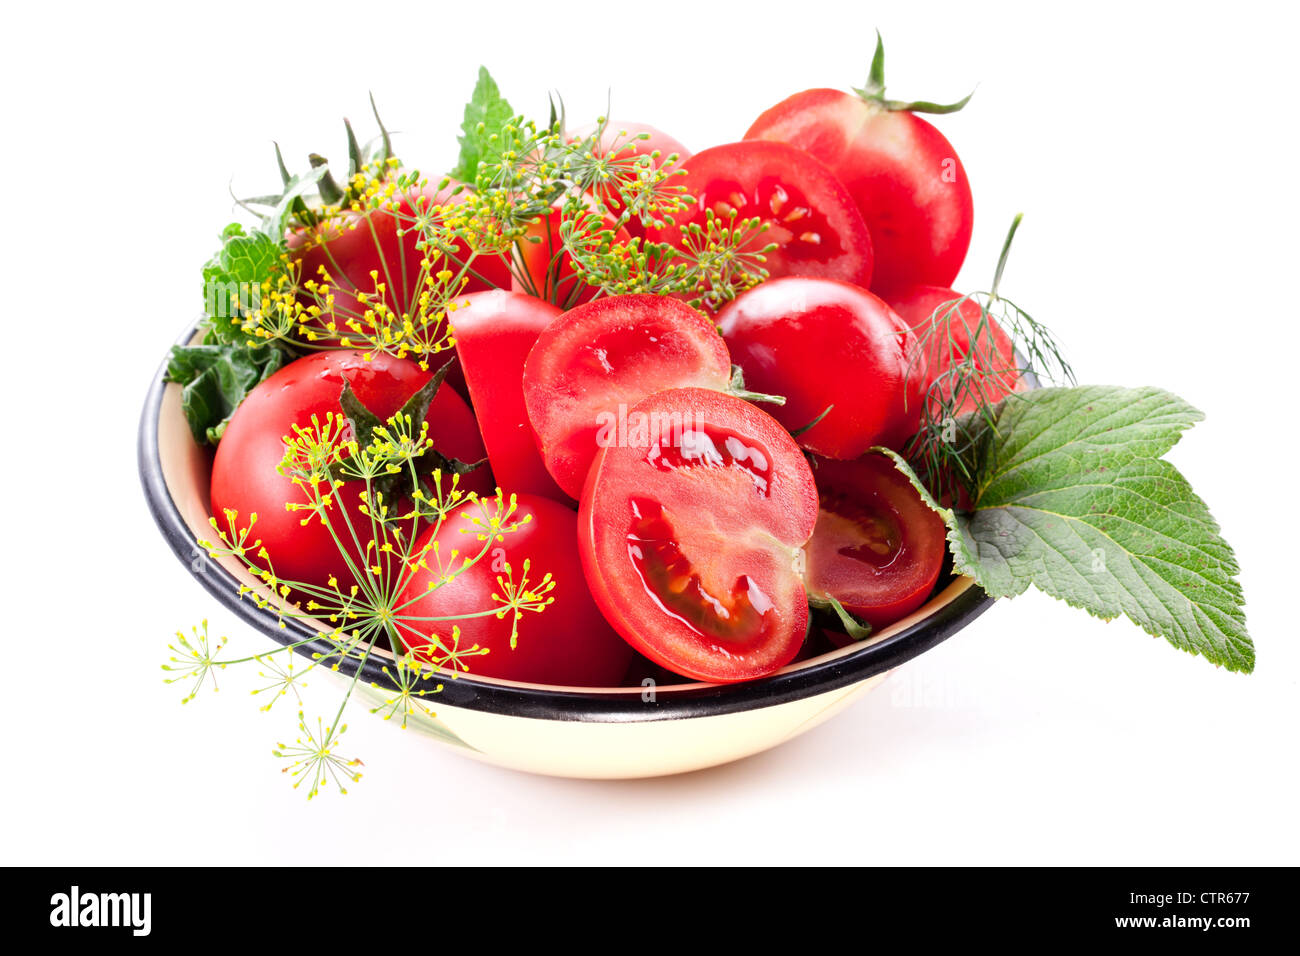 Tomatoes, cooked with herbs for the preservation on a white background. - Stock Image